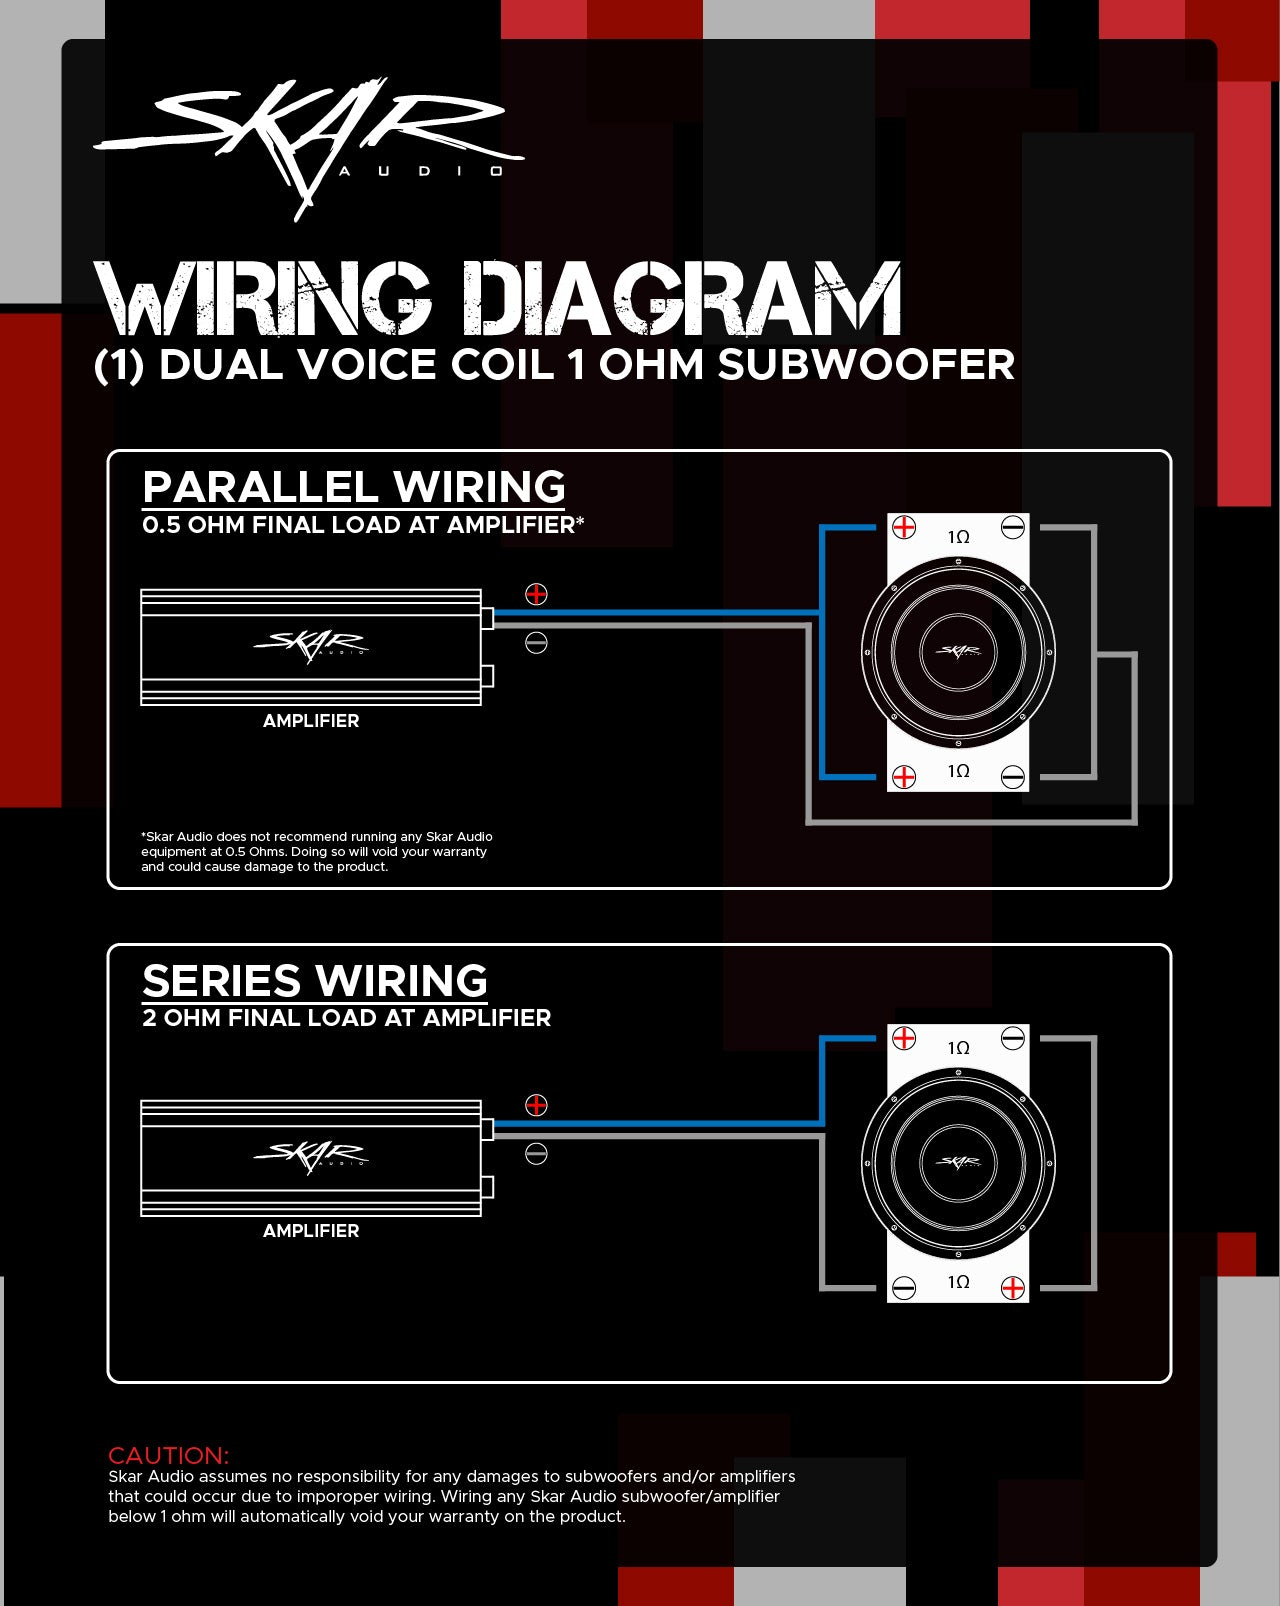 4 Ohm To 2 Ohm Wiring Diagram from cdn.shopify.com